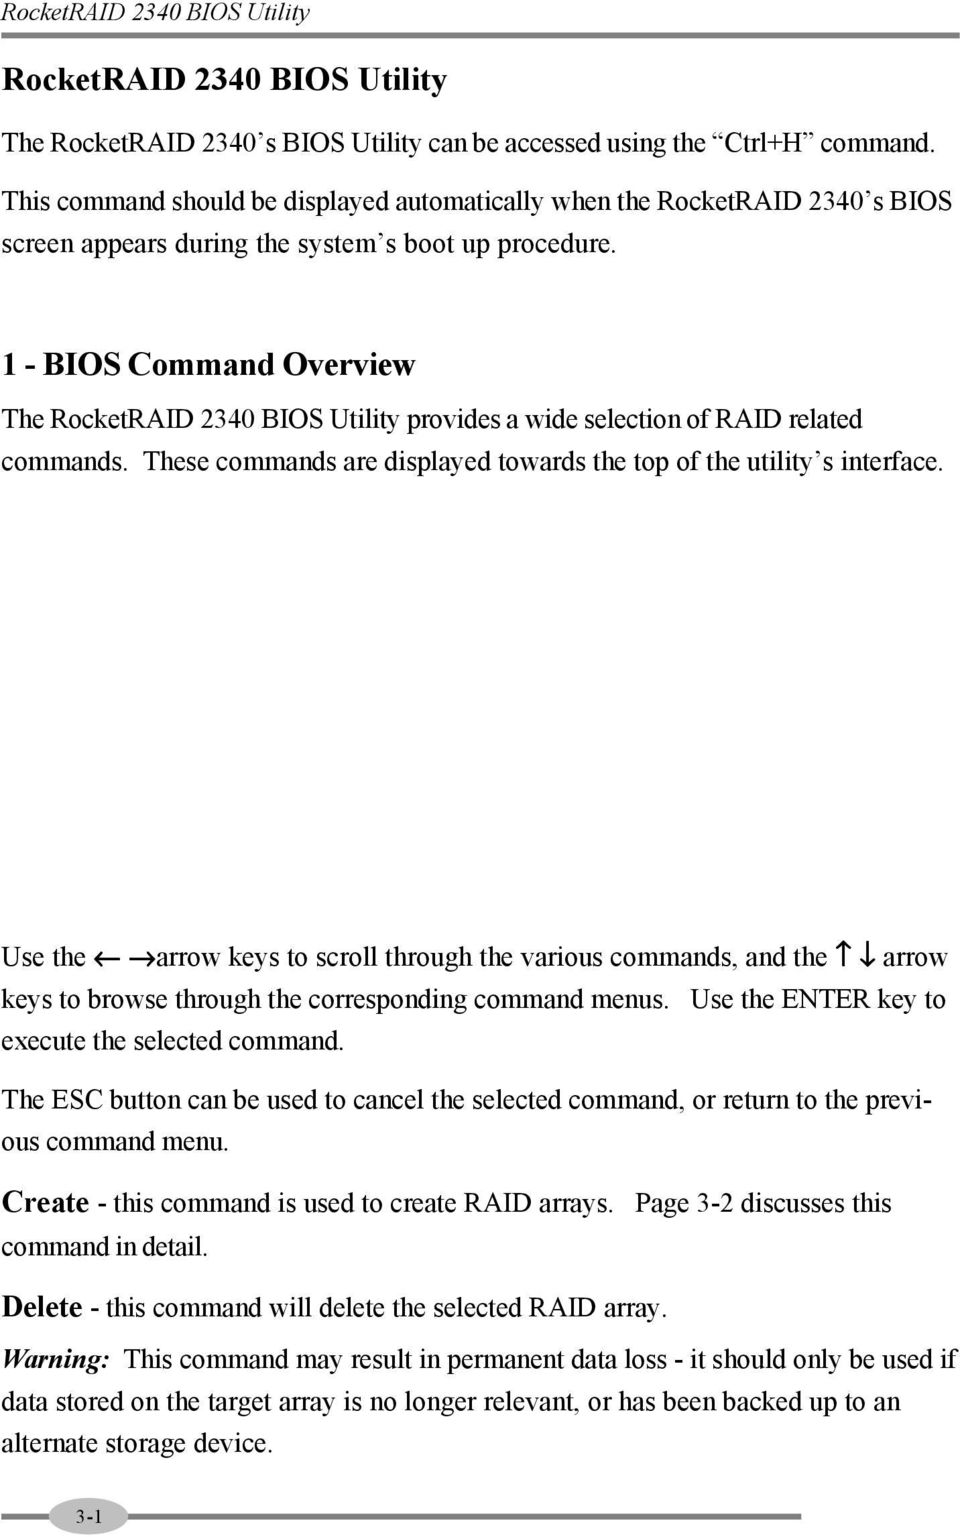 1 - BIOS Command Overview The RocketRAID 2340 BIOS Utility provides a wide selection of RAID related commands. These commands are displayed towards the top of the utility s interface.